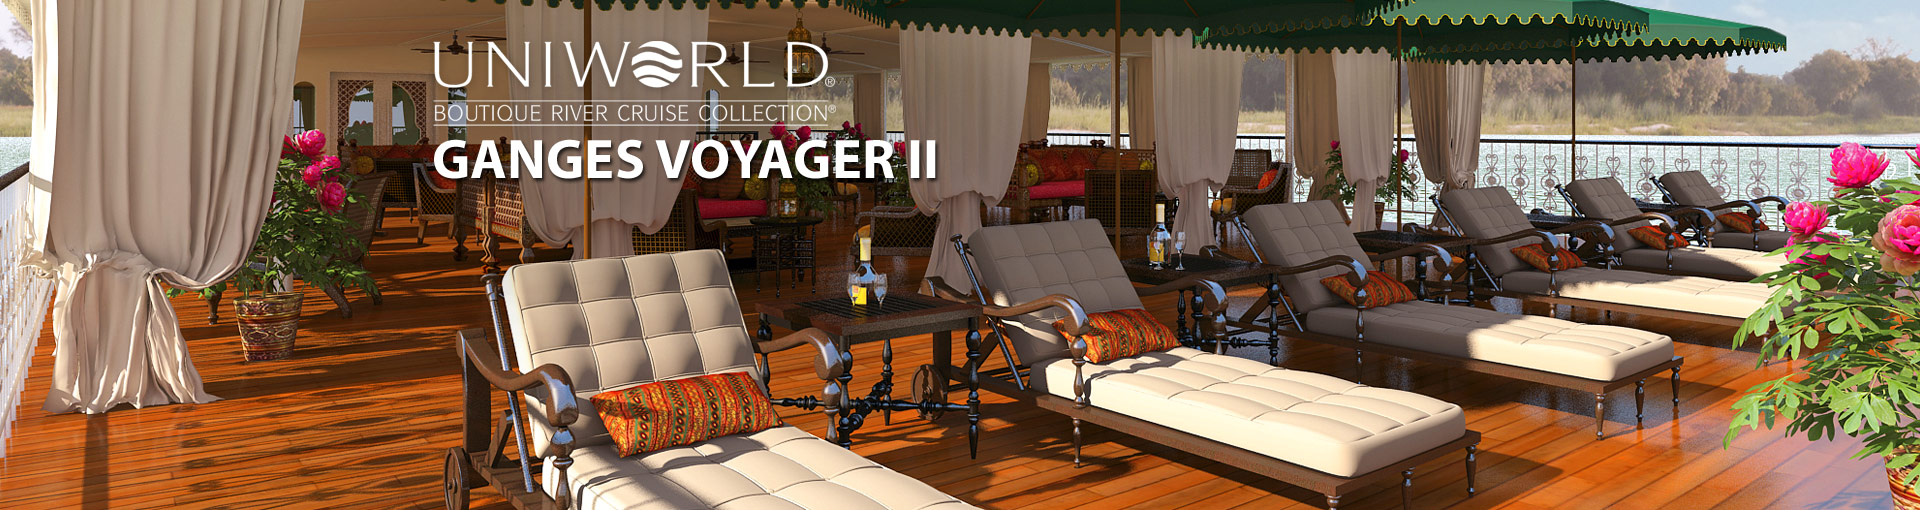 Uniworld River Cruises Ganges Voyager II ship